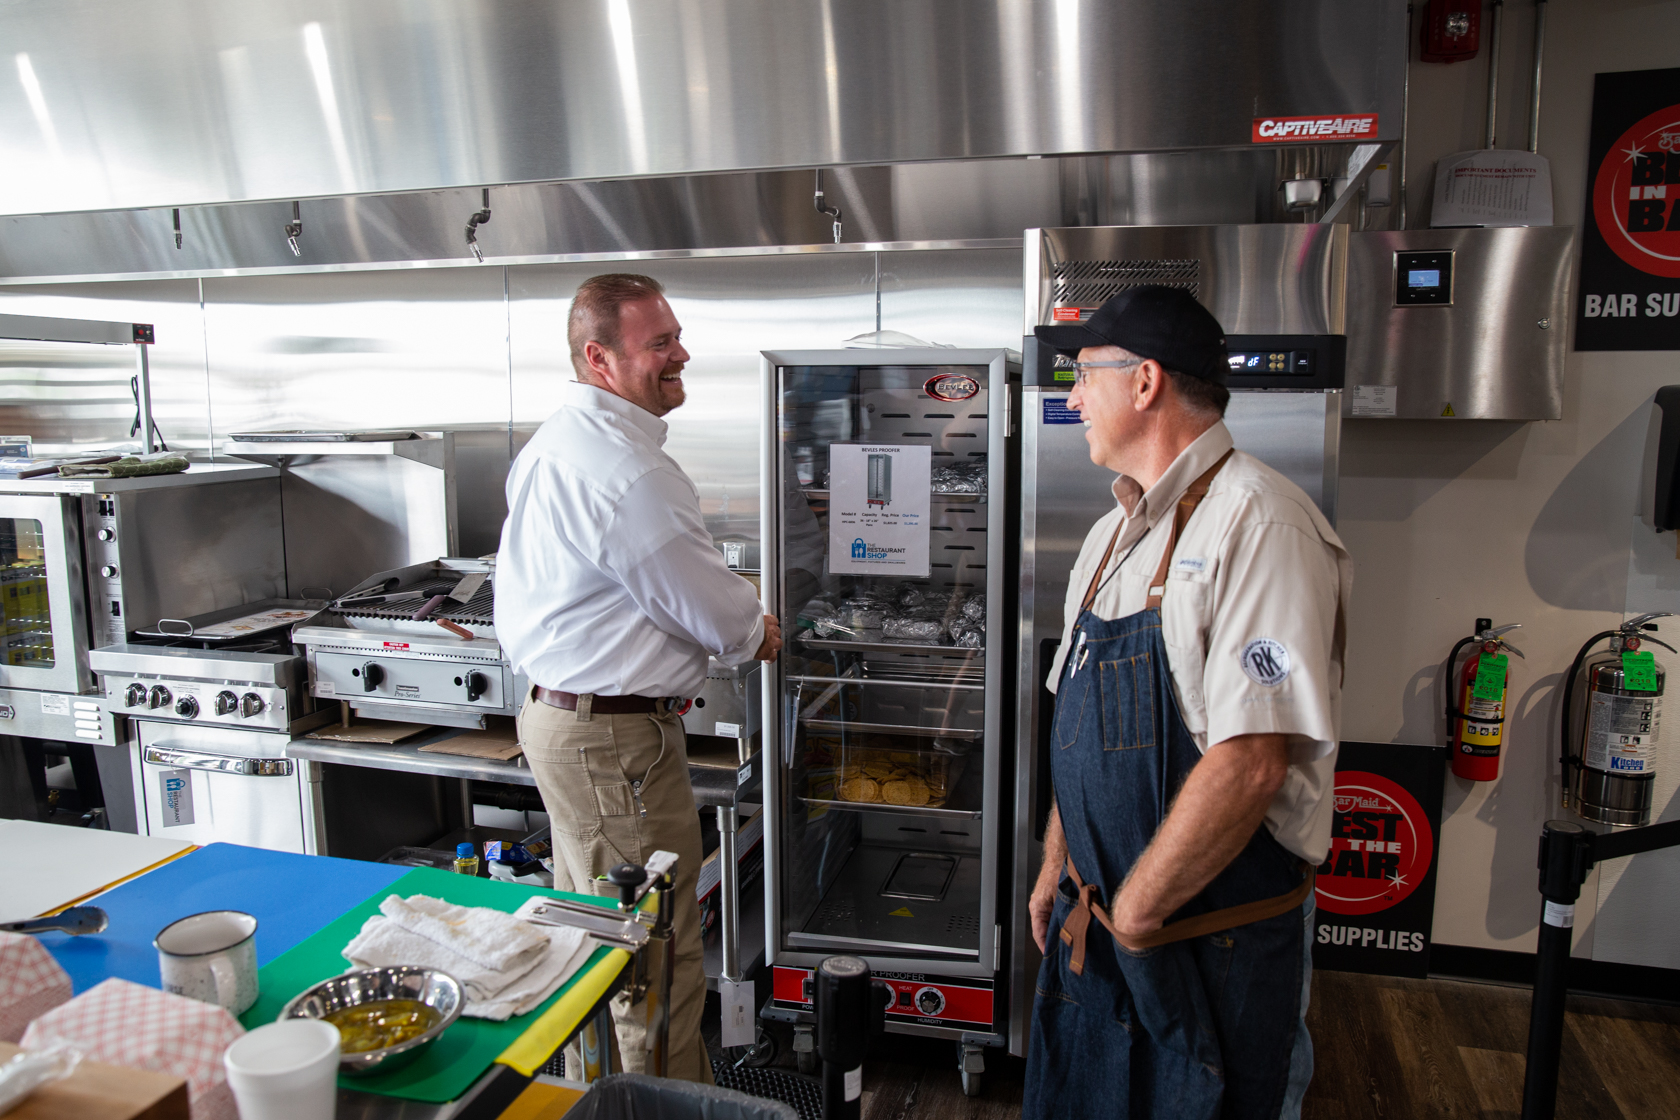 Why RK Solutions? - Put simply, what makes us better than the other guys is our team! When you need a fast fix for your commercial kitchen equipment, our crew is what makes the difference in you being up and running sooner, rather than later.